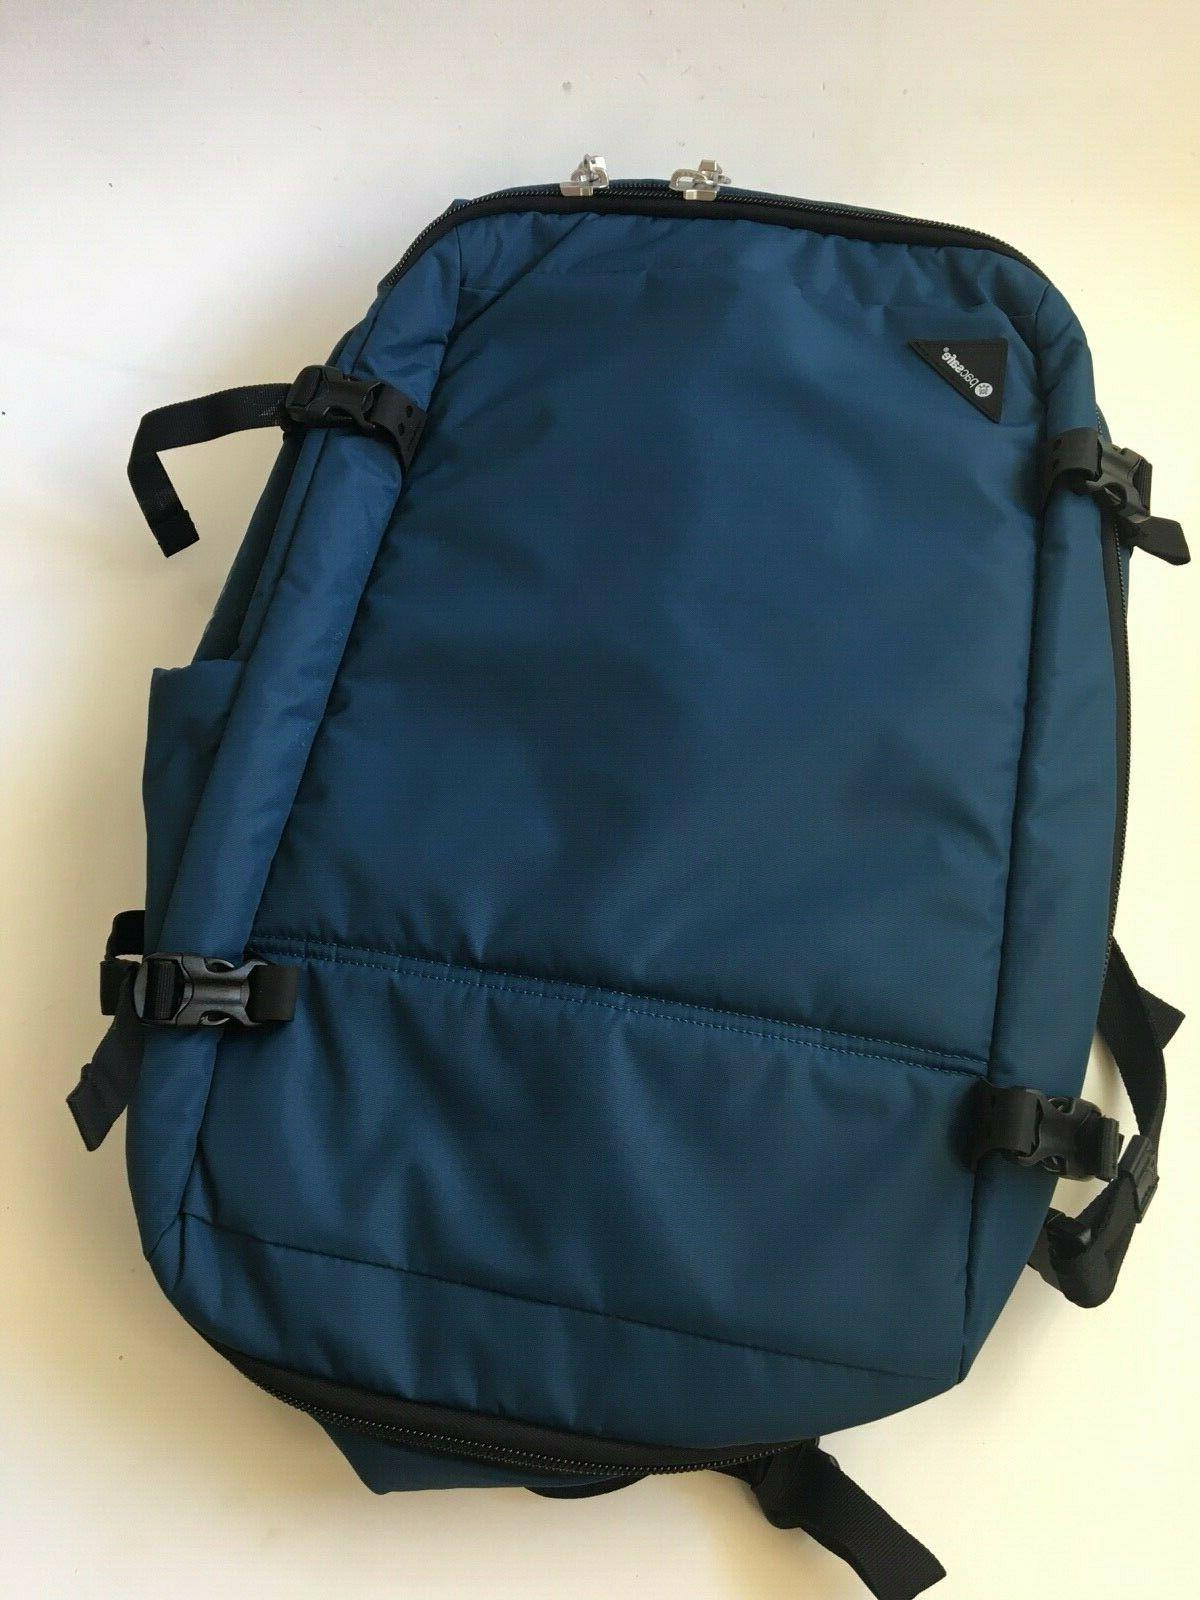 Pacsafe anti backpack bag, NEW